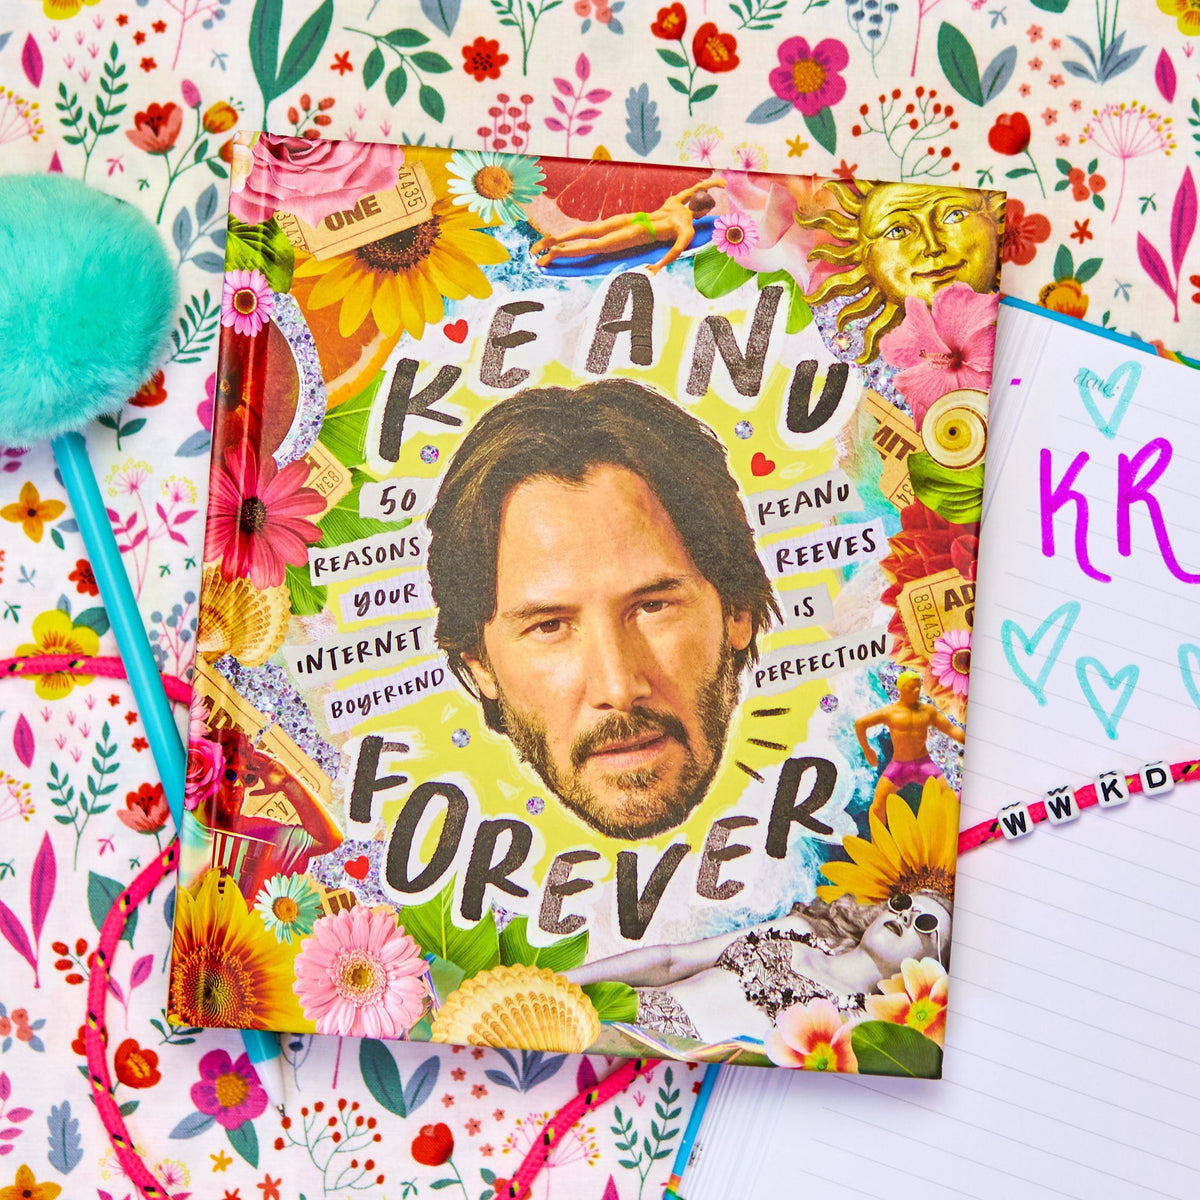 Keanu Forever Book - 50 Reasons Your Internet Boyfriend Keanu Reeves Is Perfection